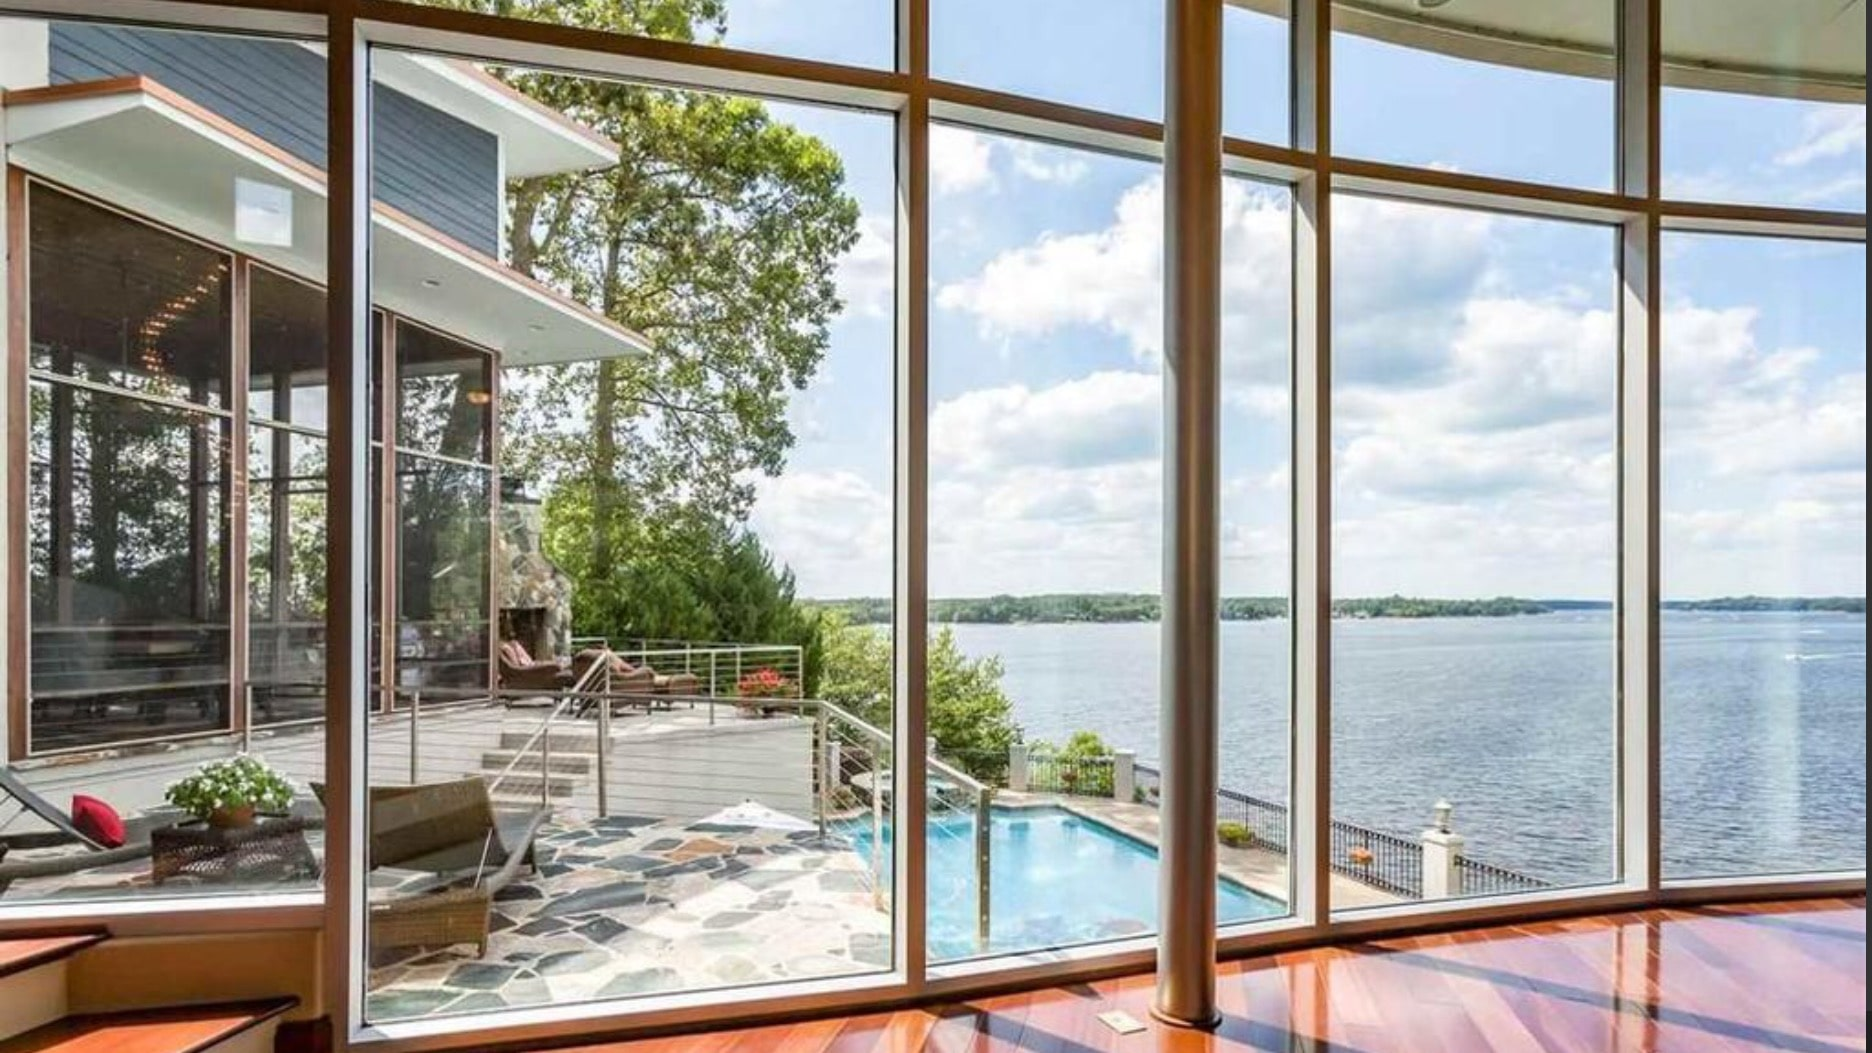 Curved floor-to-ceiling glass windows for expansive views of the lake.